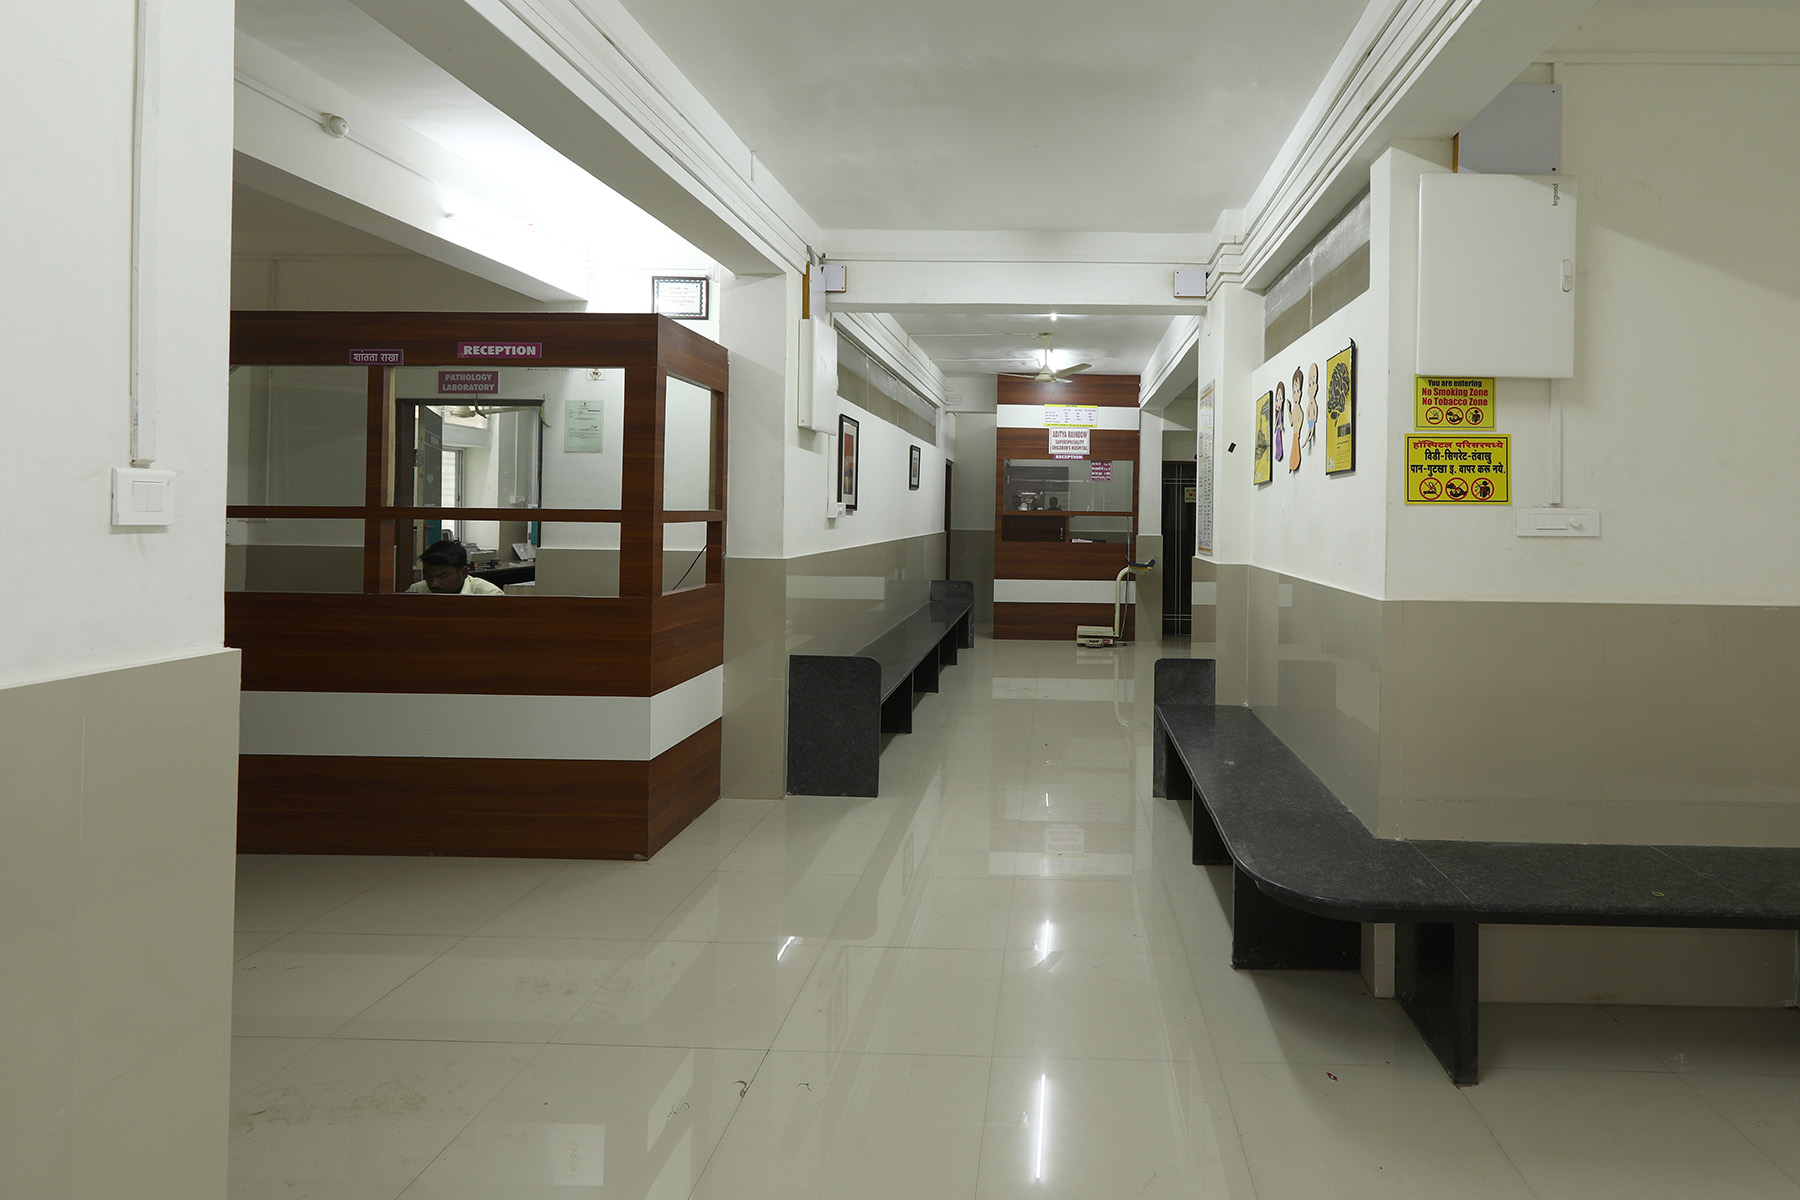 Waiting area|ADITYA RAINBOW HOSPITAL|Sangli Miraj Road,Sangli